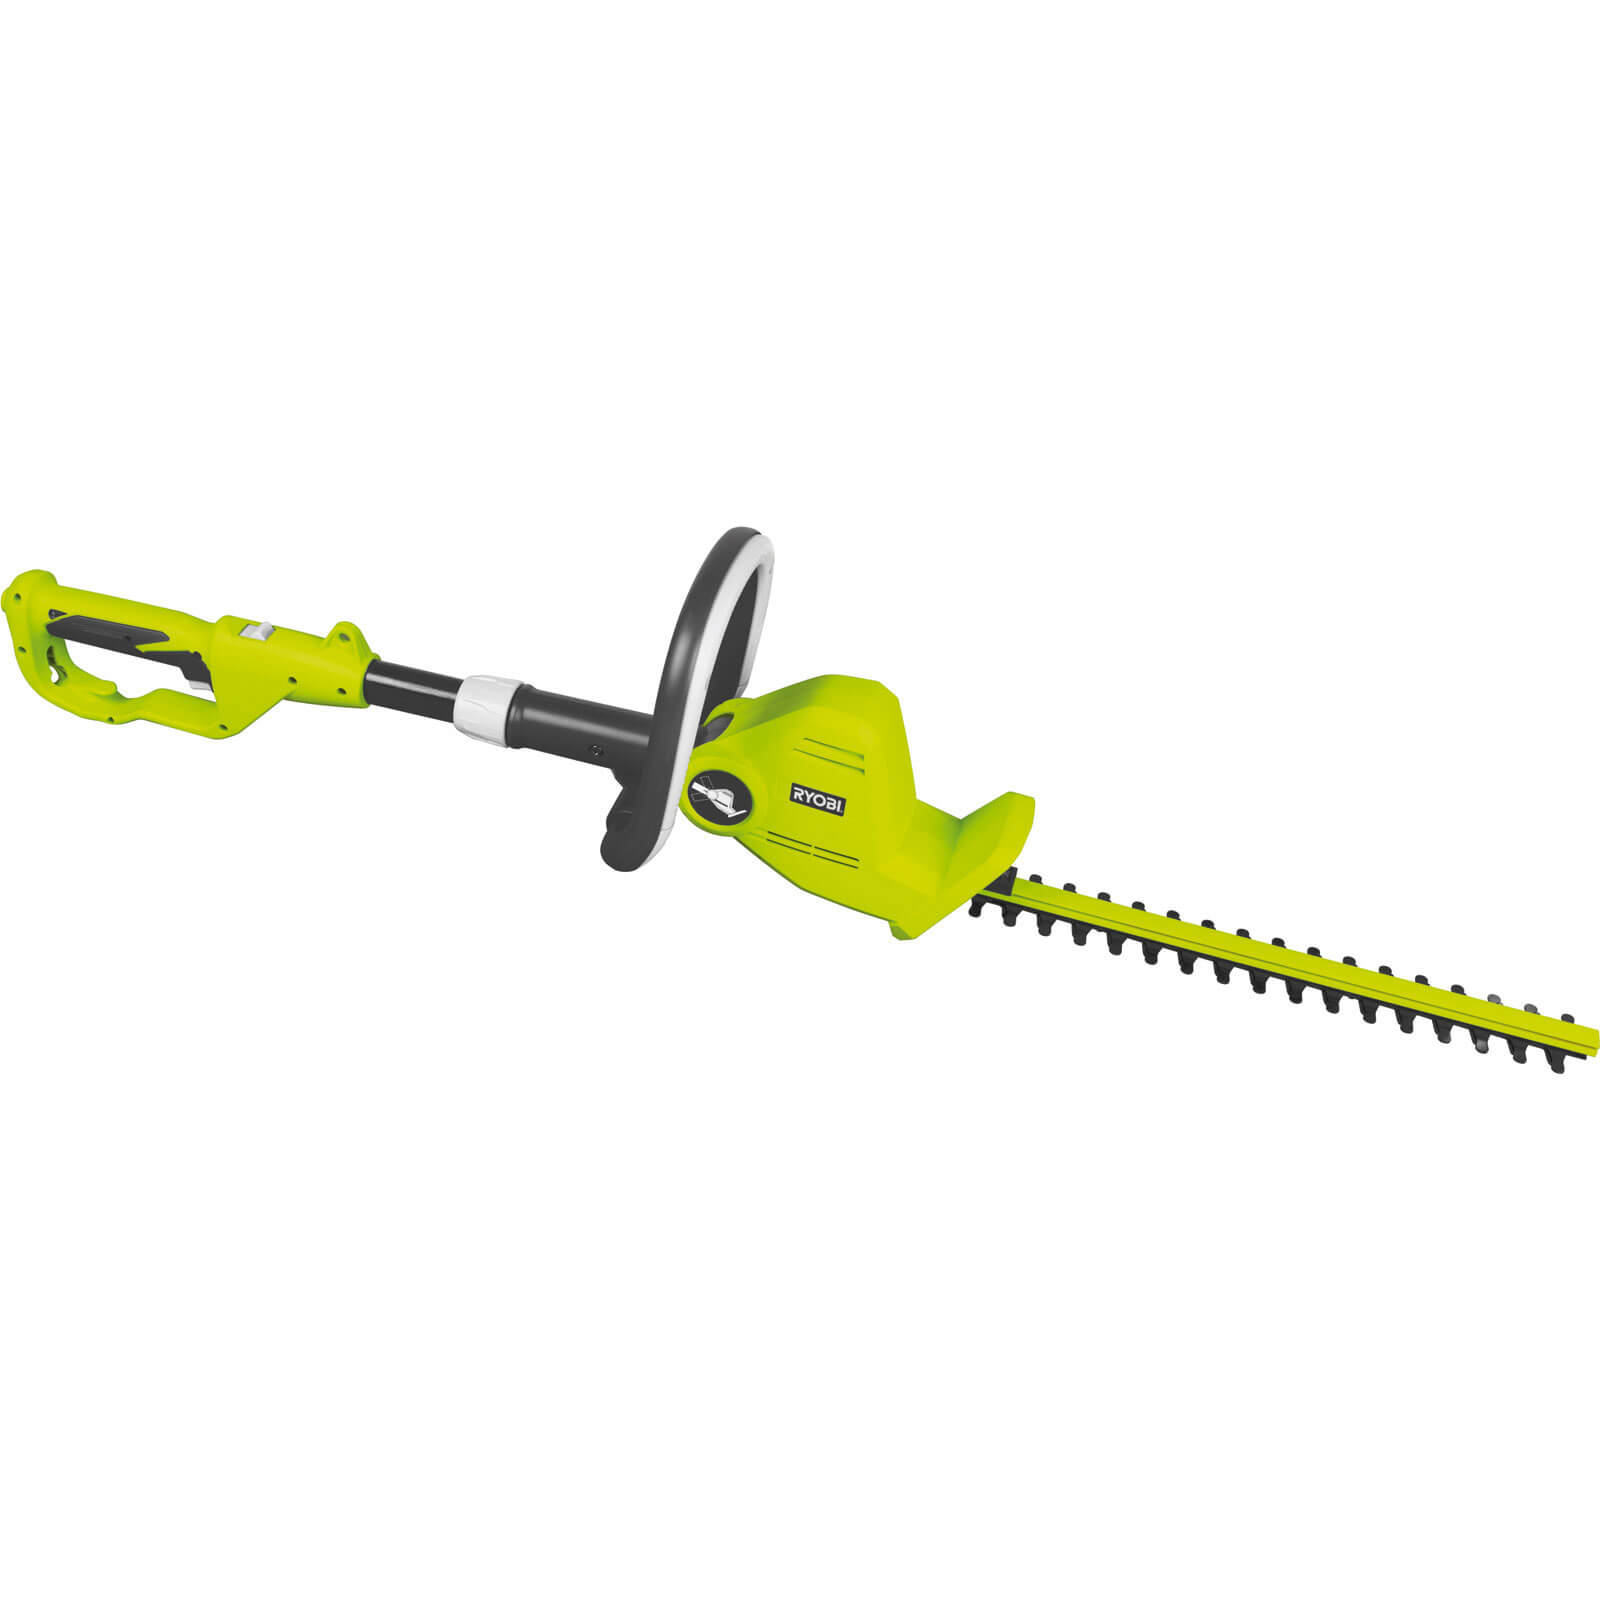 Ryobi RHT450X Electric Pivot Head Long Reach Hedge Trimmer 450mm Blade Length 450w 240v